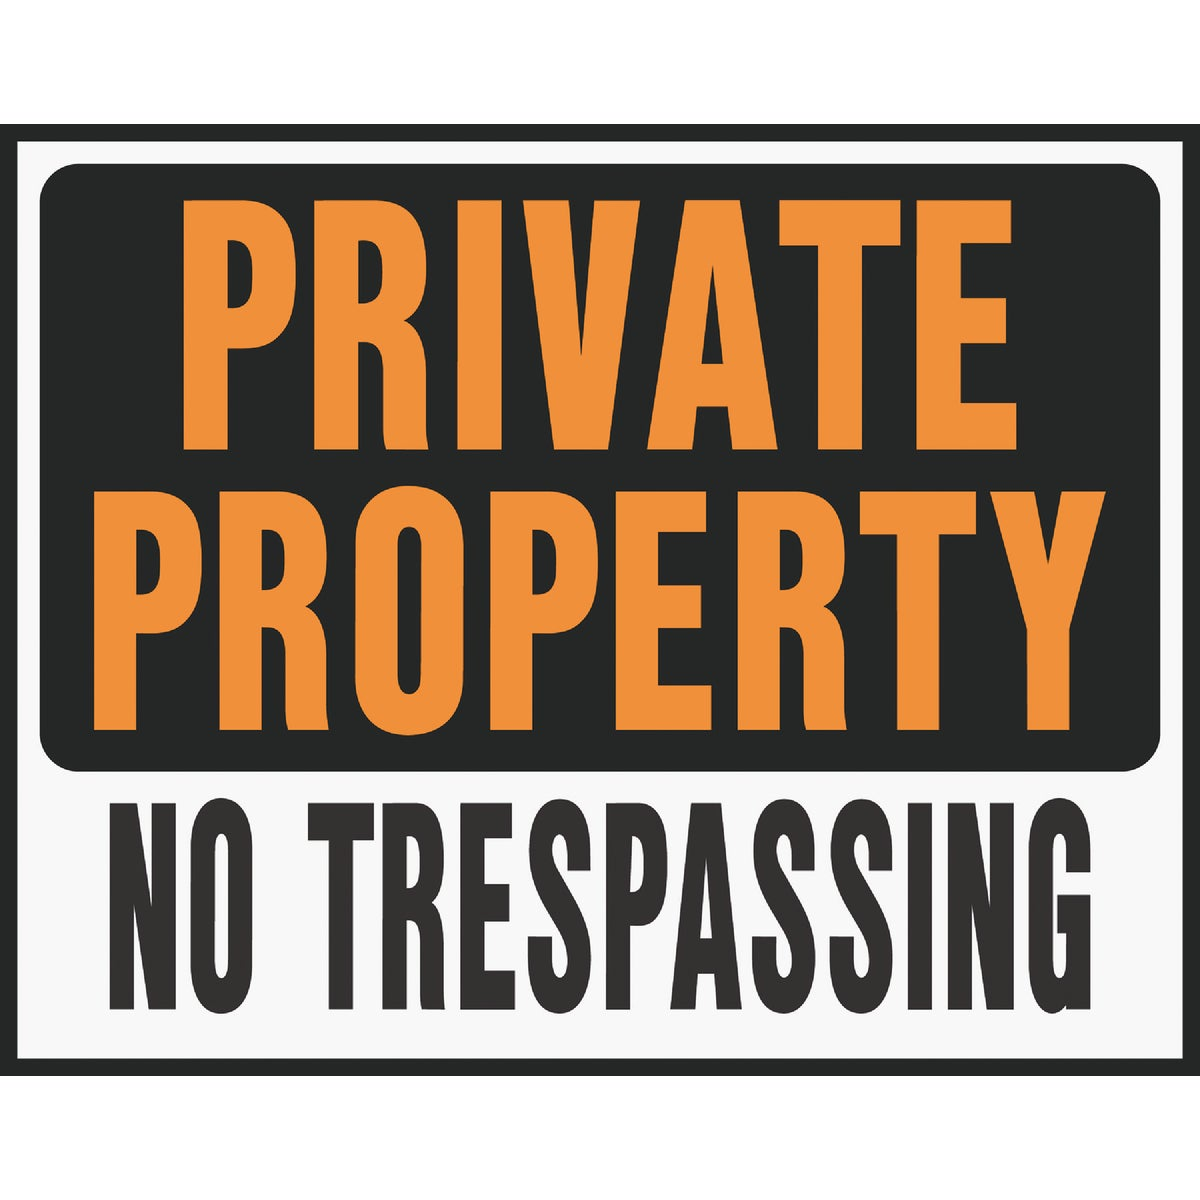 15X19 PRIVATE PROP SIGN - SP-106 by Hy Ko Prods Co